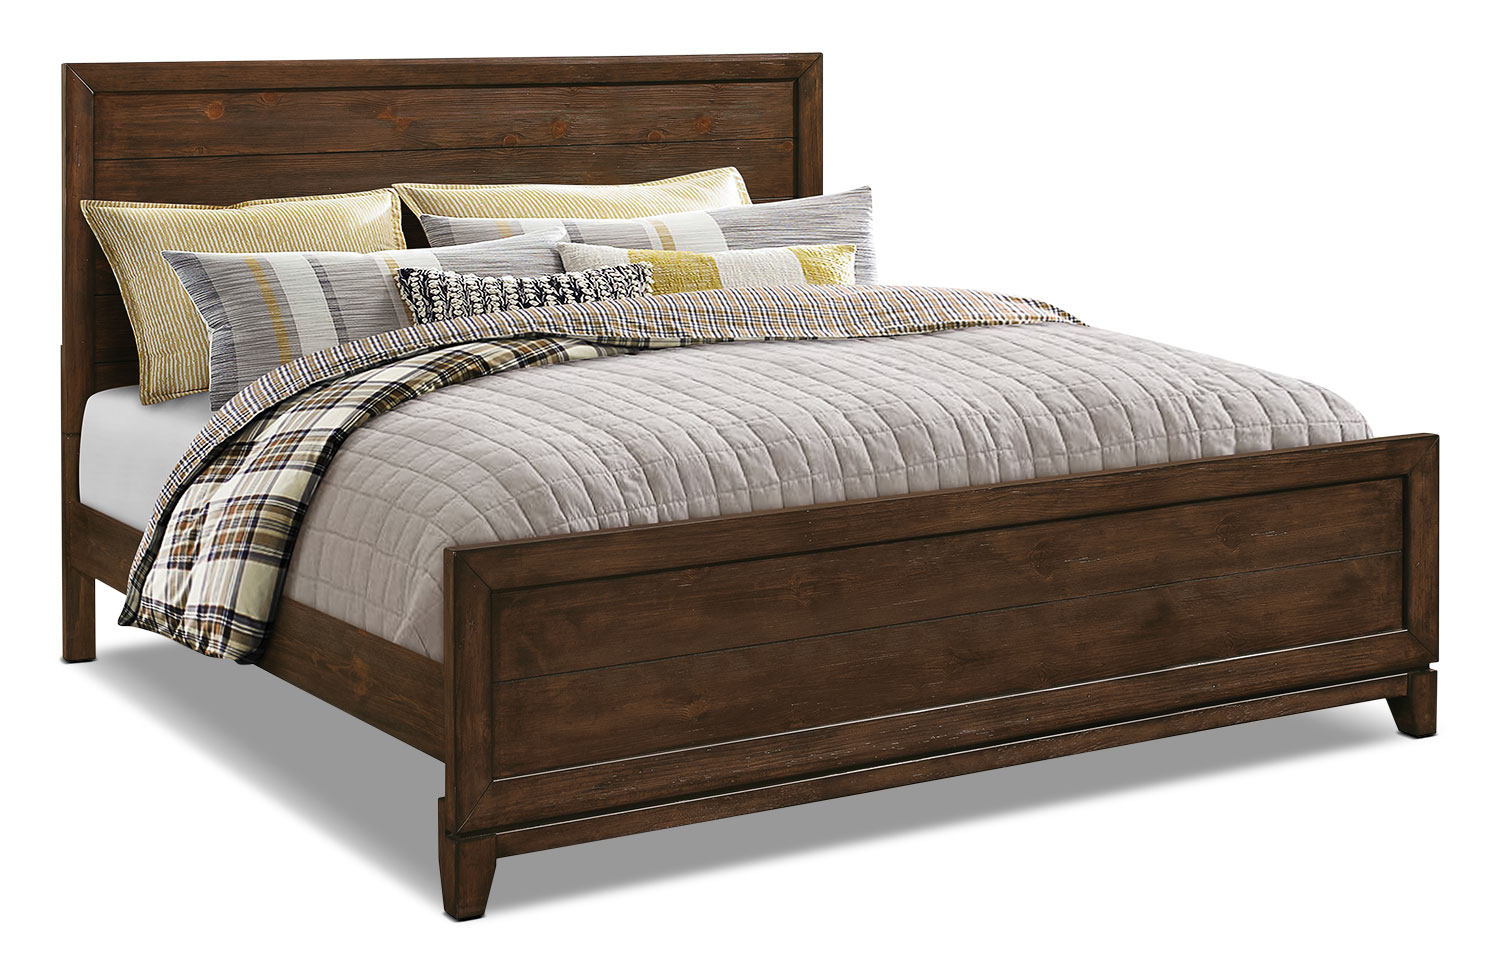 Bedroom Set Price